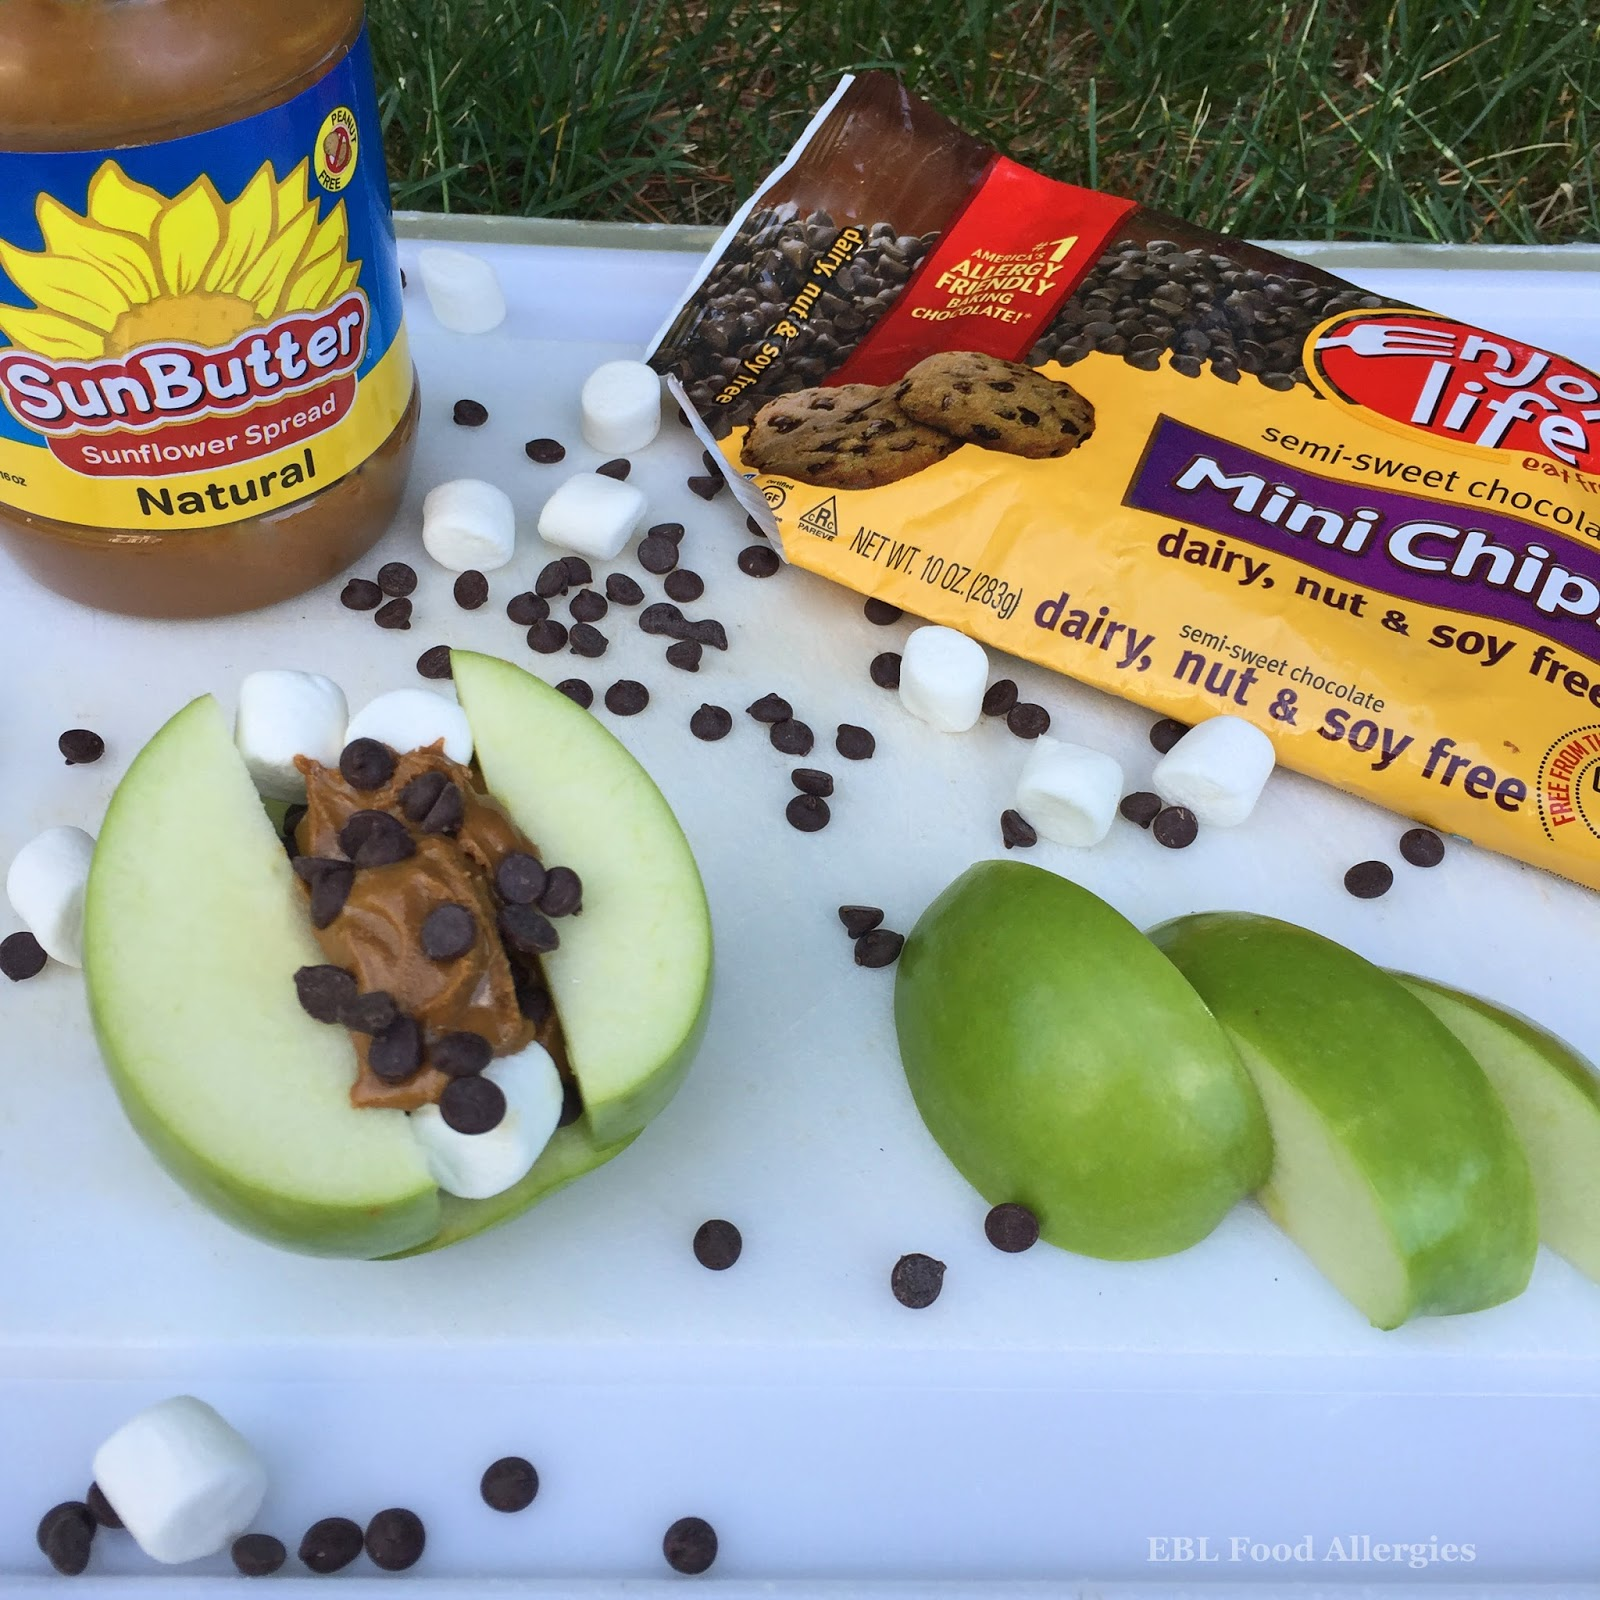 Allergy friendly campfire recipes dairyfree nutfree ebl food allergy friendly campfire recipes forumfinder Images